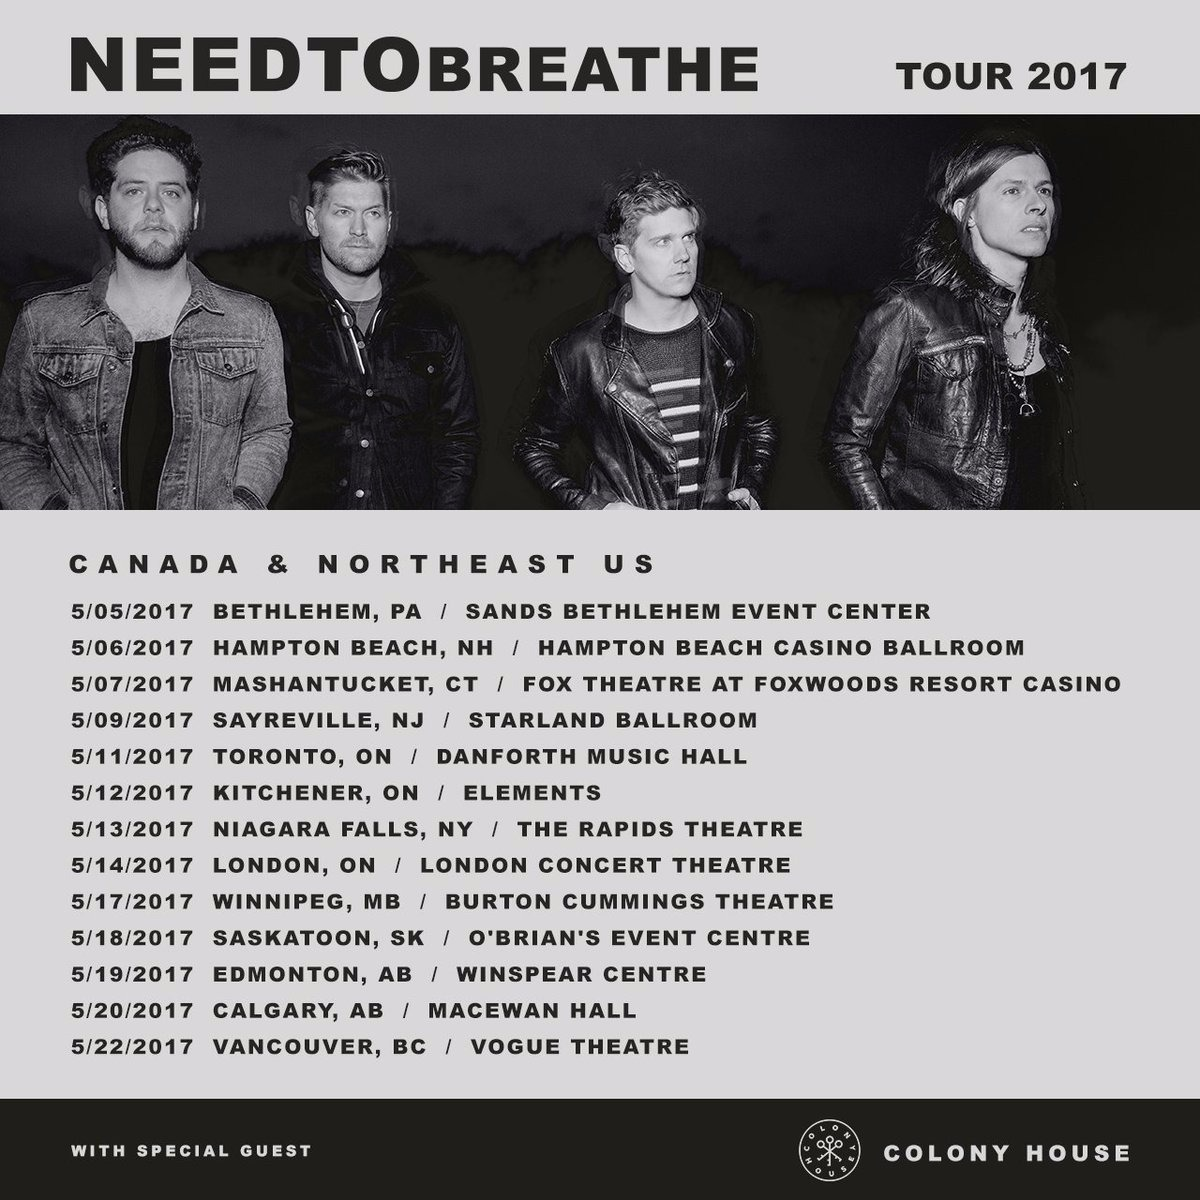 Needtobreathe at Danforth Music Hall